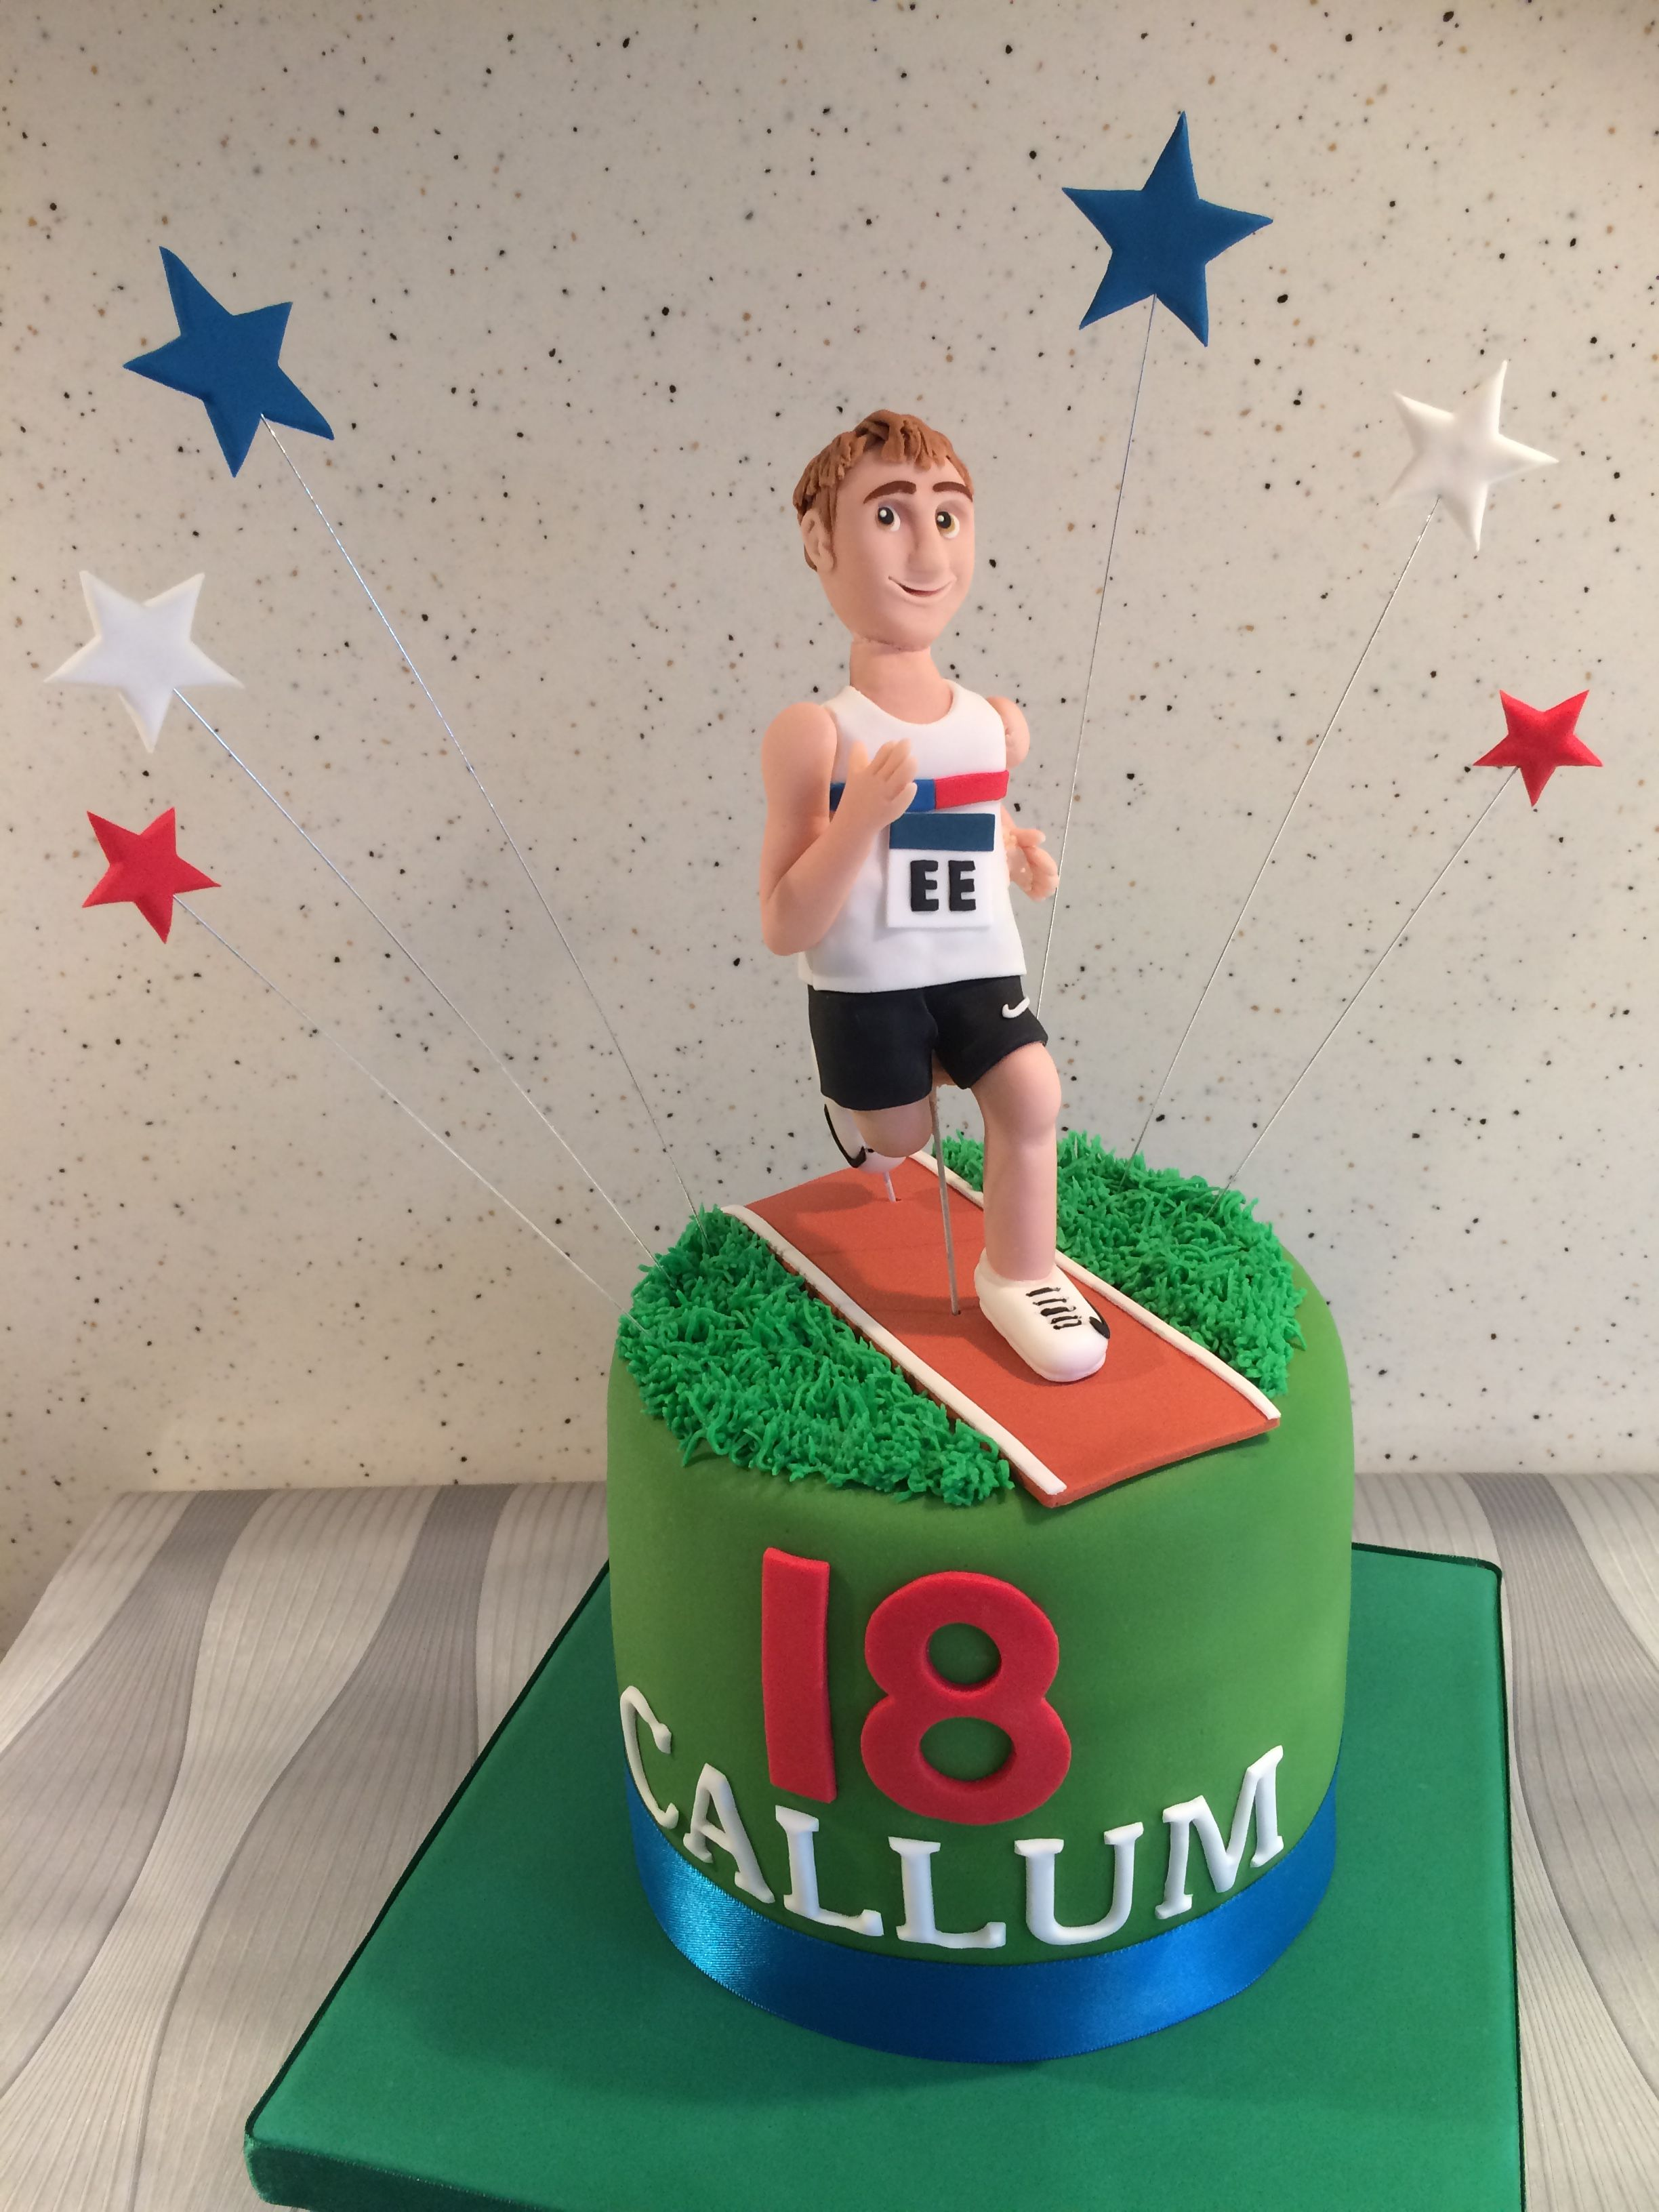 Running Athletefigure Birthday Cake Running Athletefigure Birthday